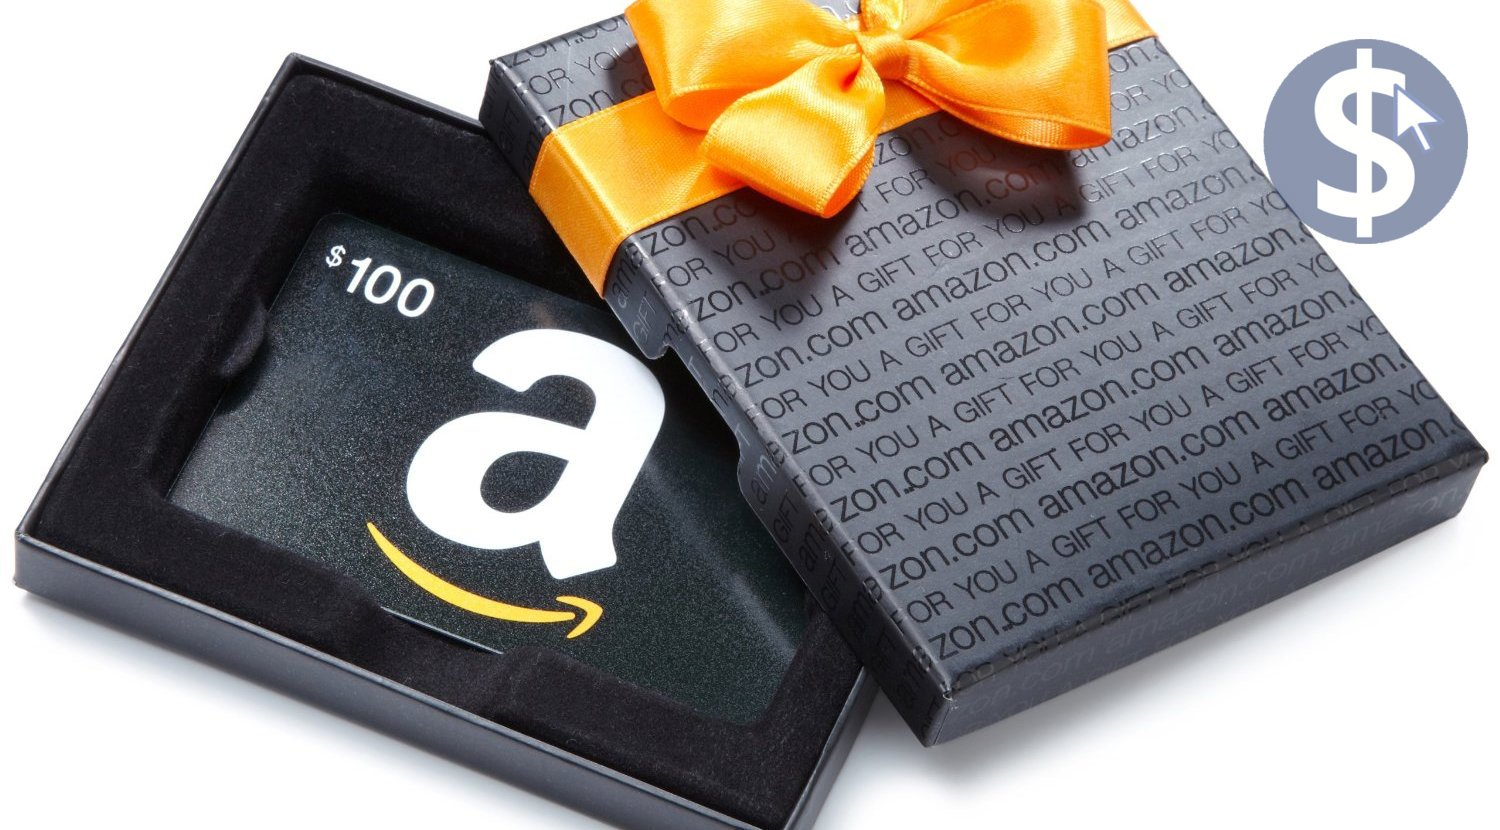 Amazon acquista 50 in buoni regalo e ricevi altri 8 for Codici regalo amazon